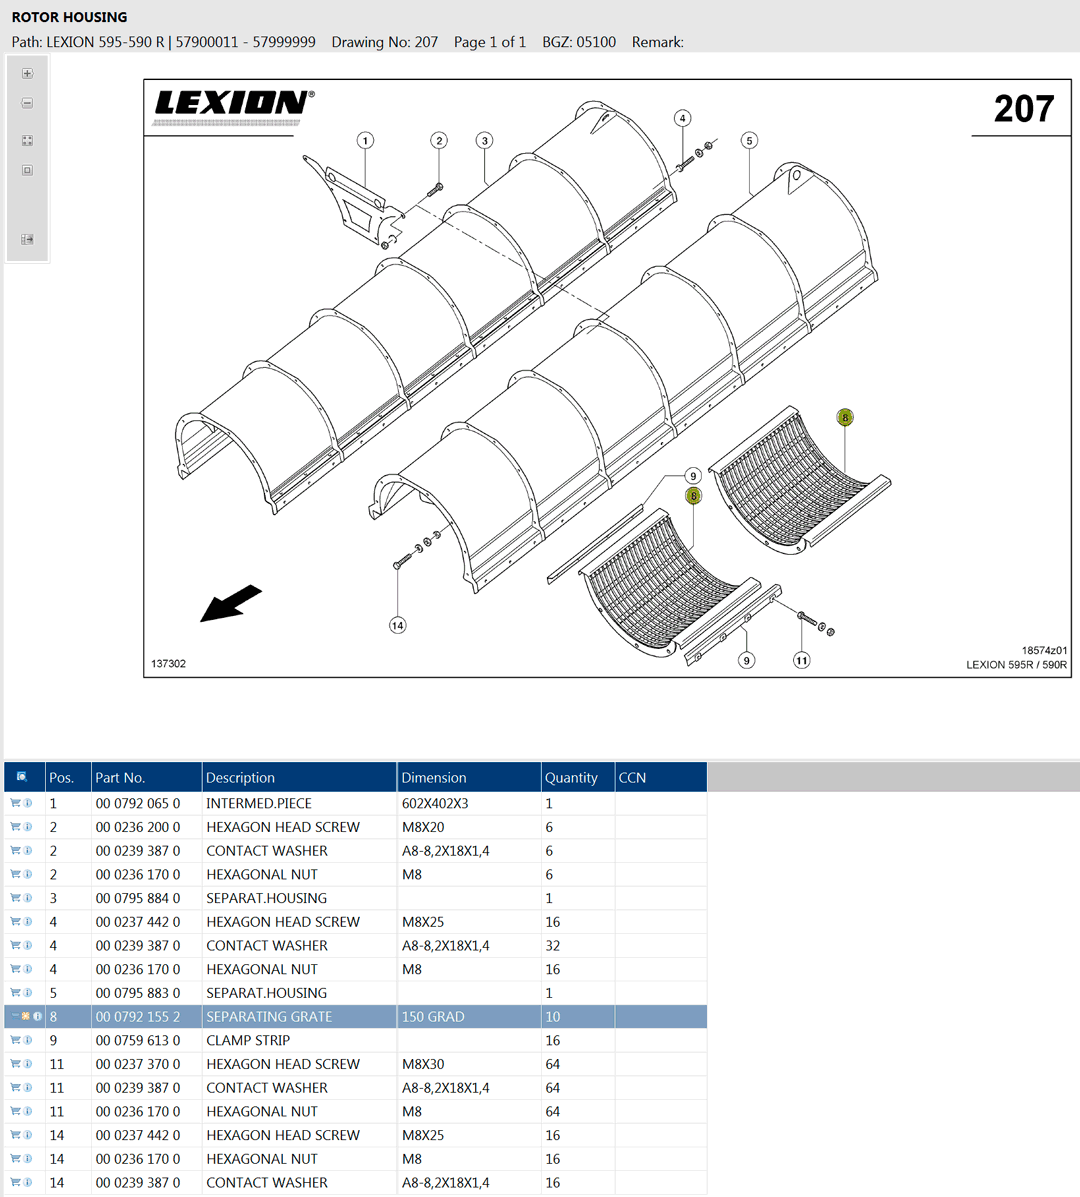 Lexion 595R parts and schemes - rotor housing